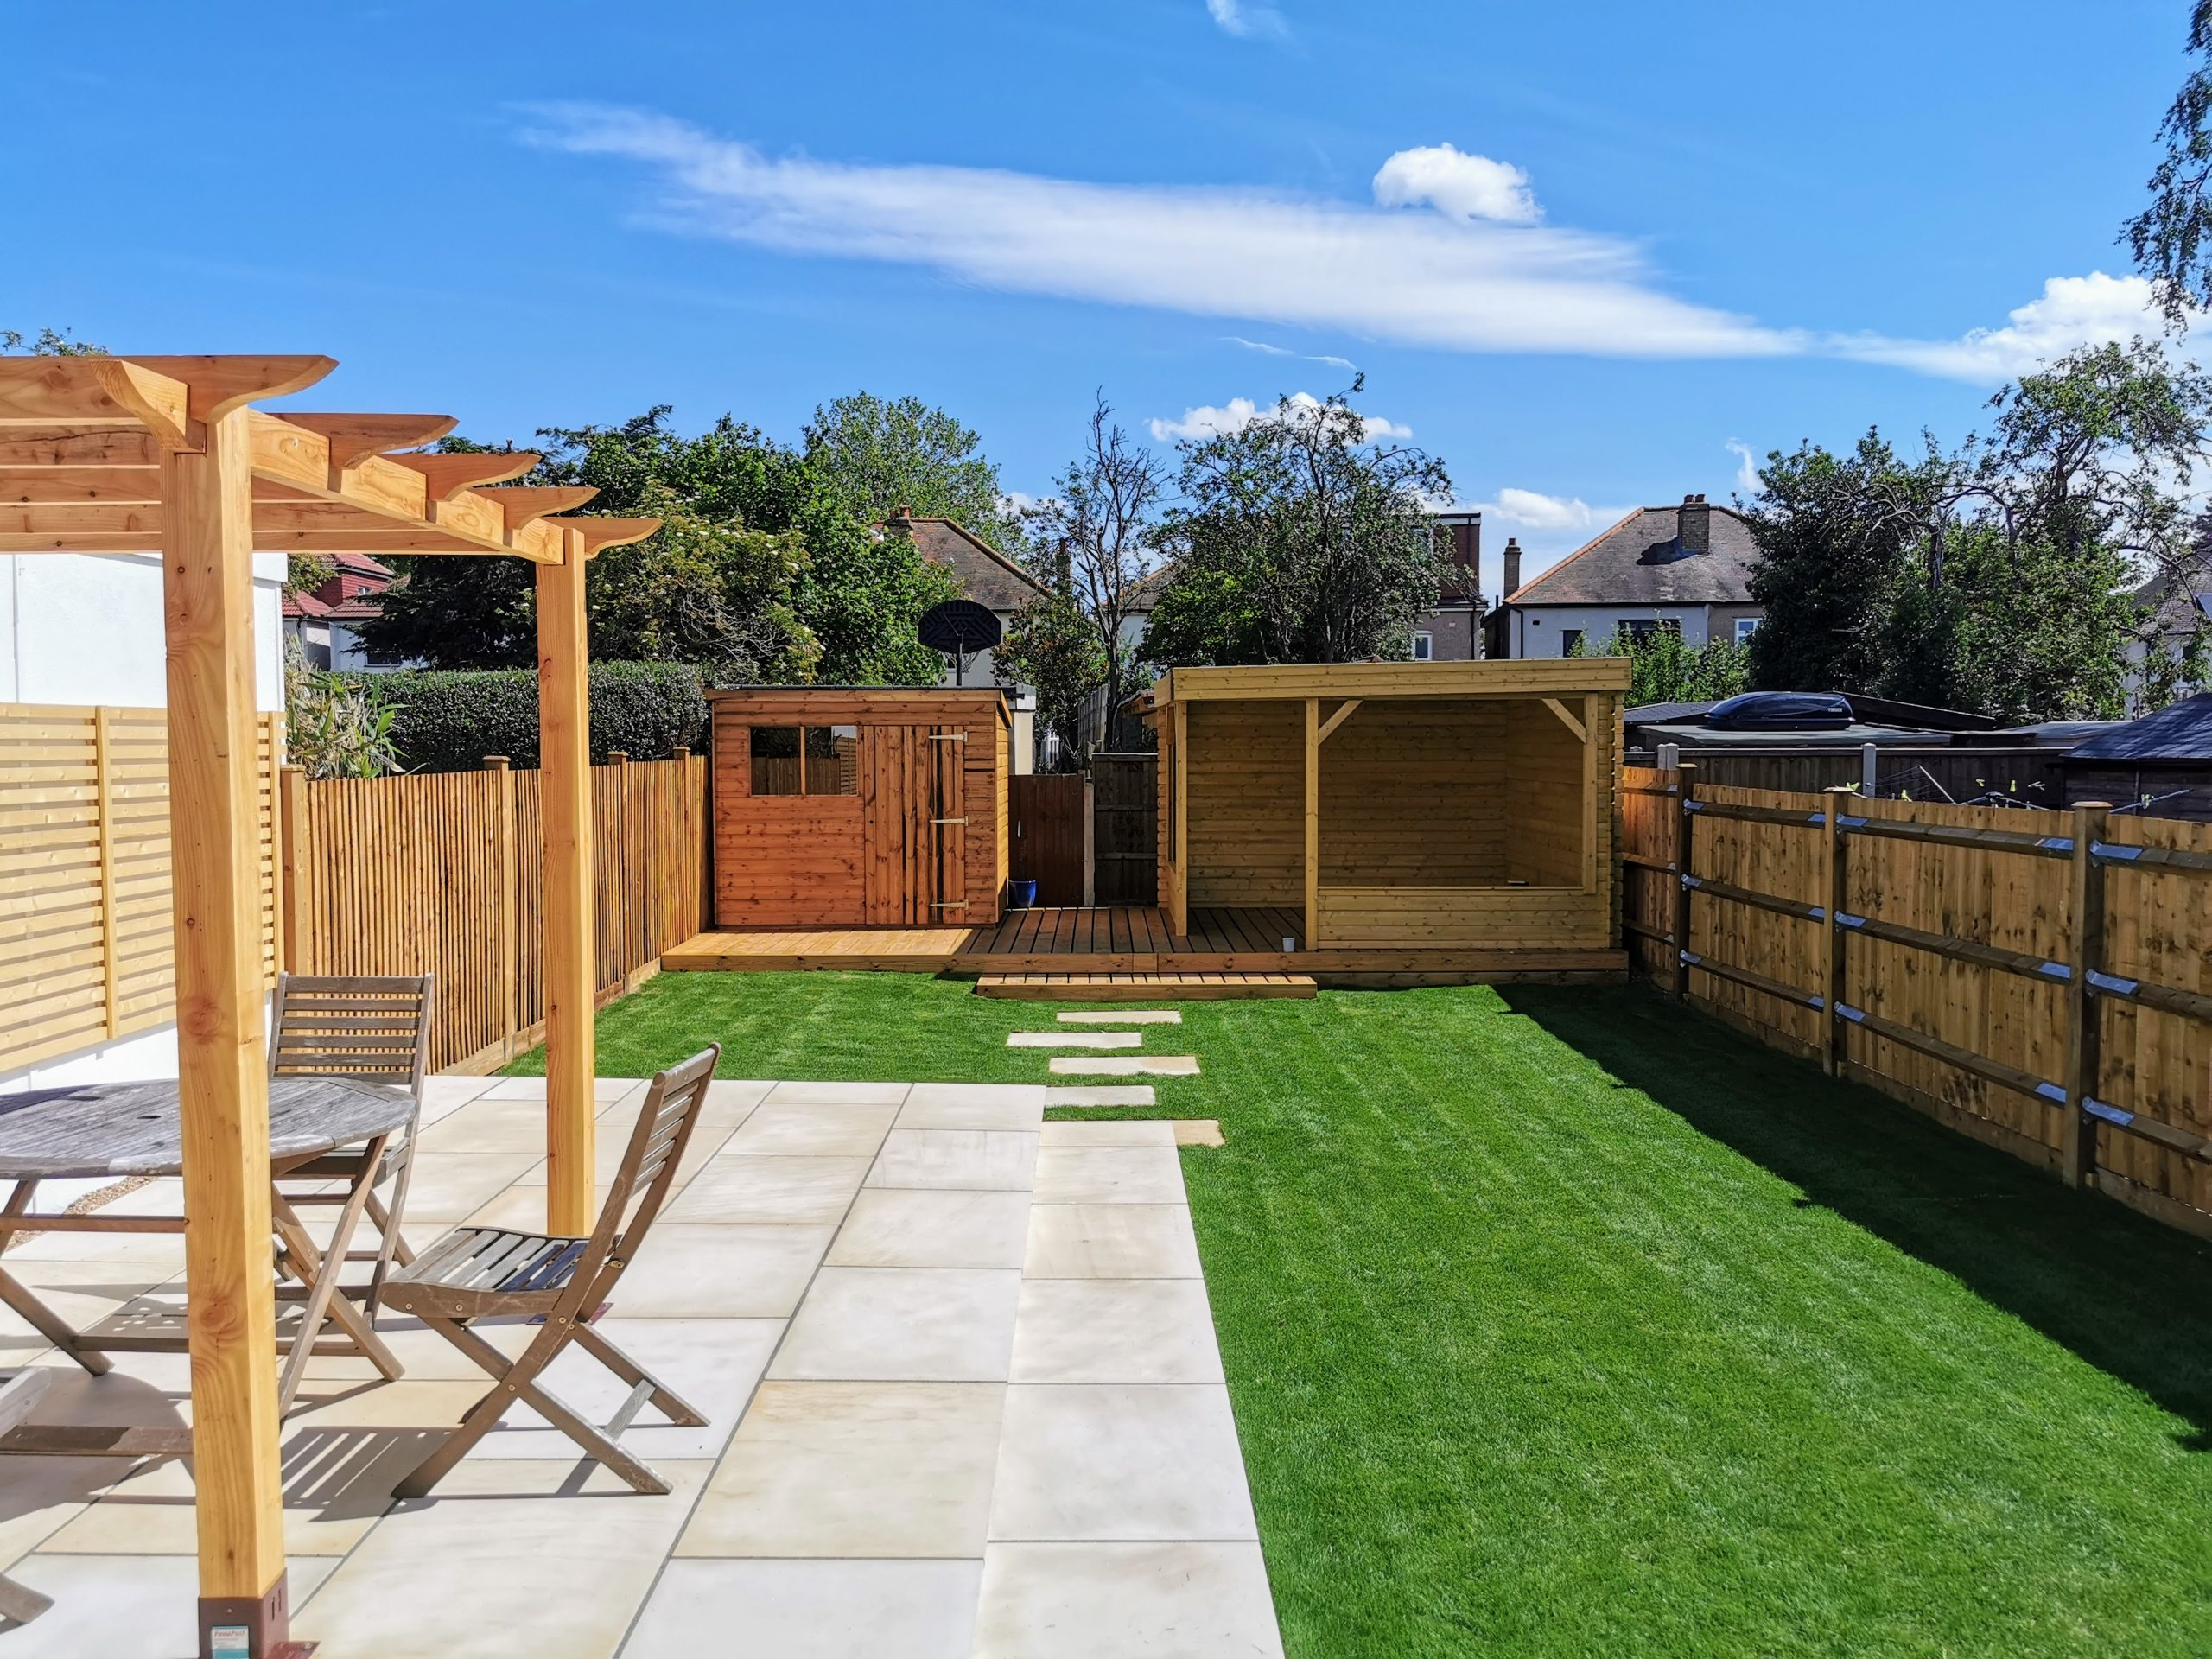 full landscape garden with patio area and pergola, summerhouse and decking with Fencing